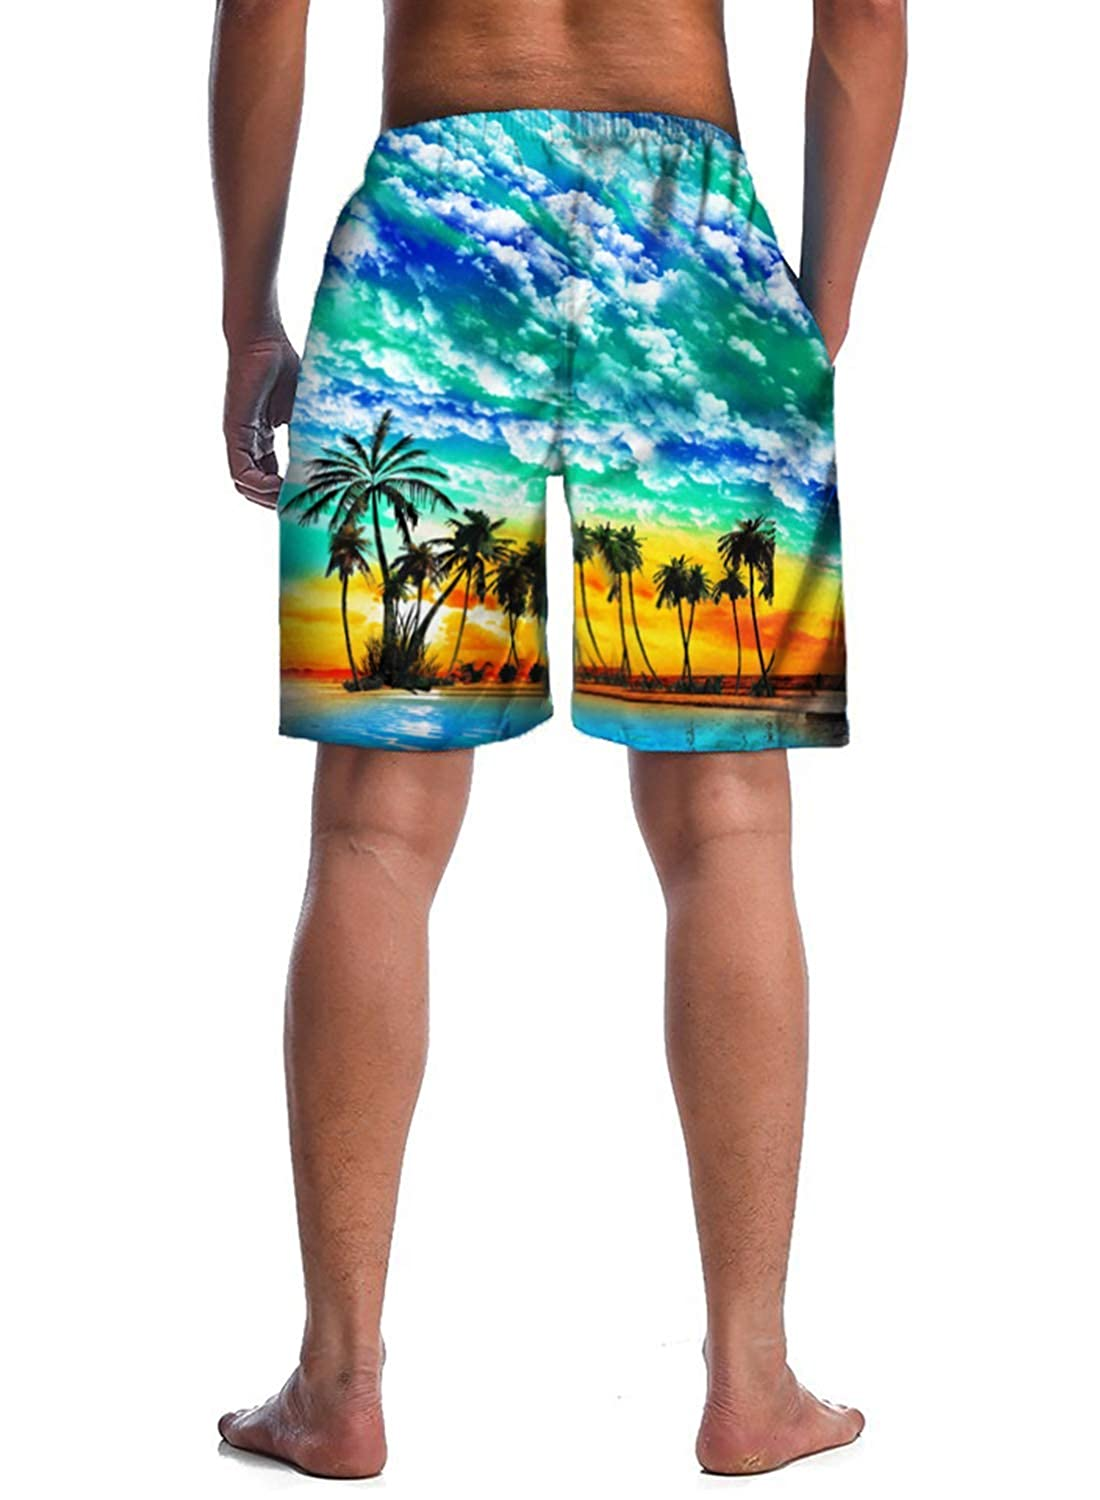 Enlifety Mens Swim Trunks 3D Print Quick Dry Beach Board Shorts with Mesh Lining